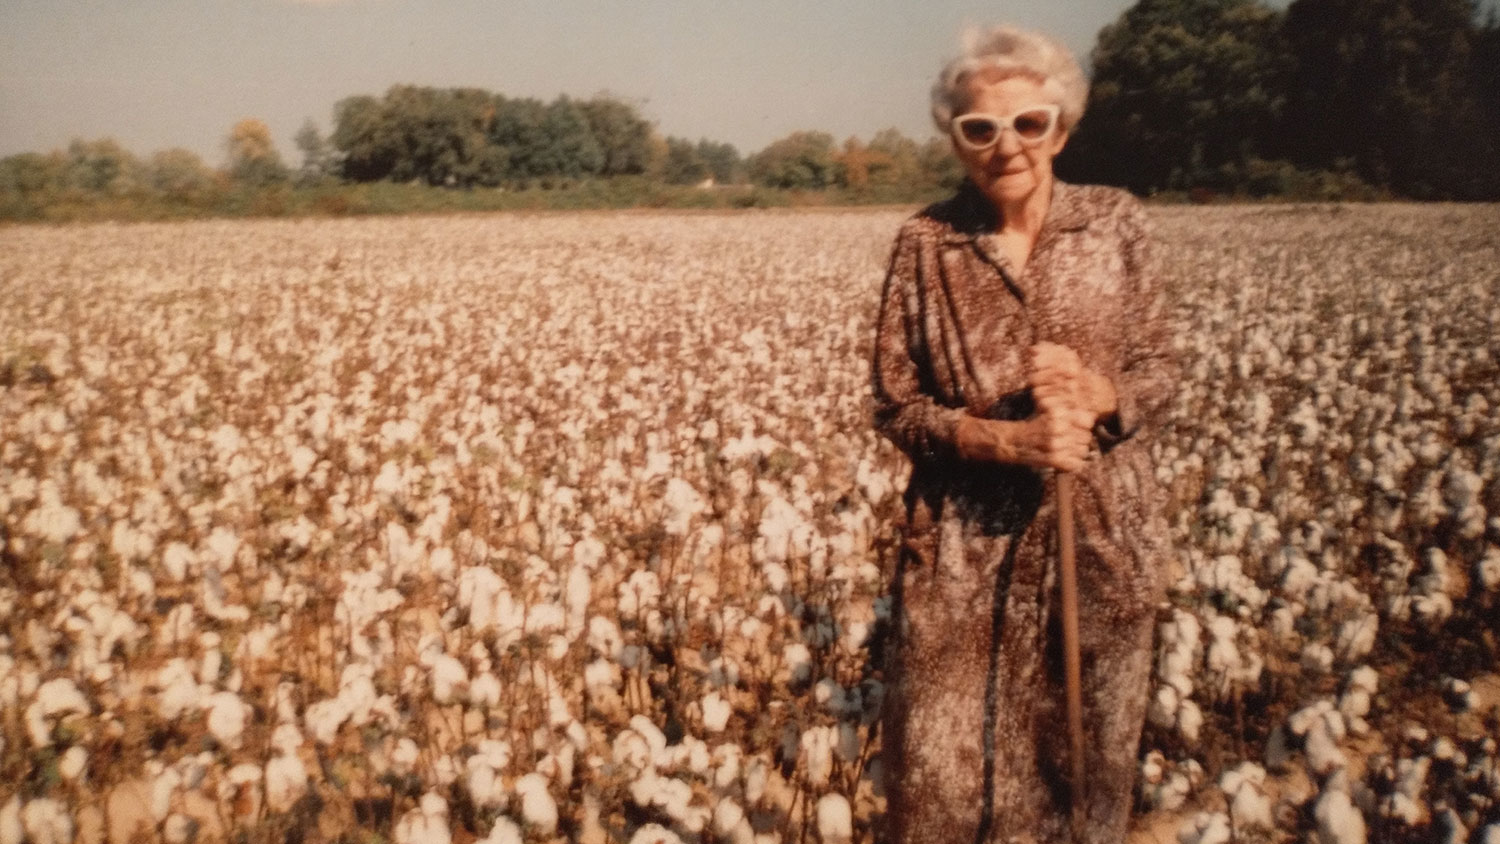 Older white woman standing in a cotton field